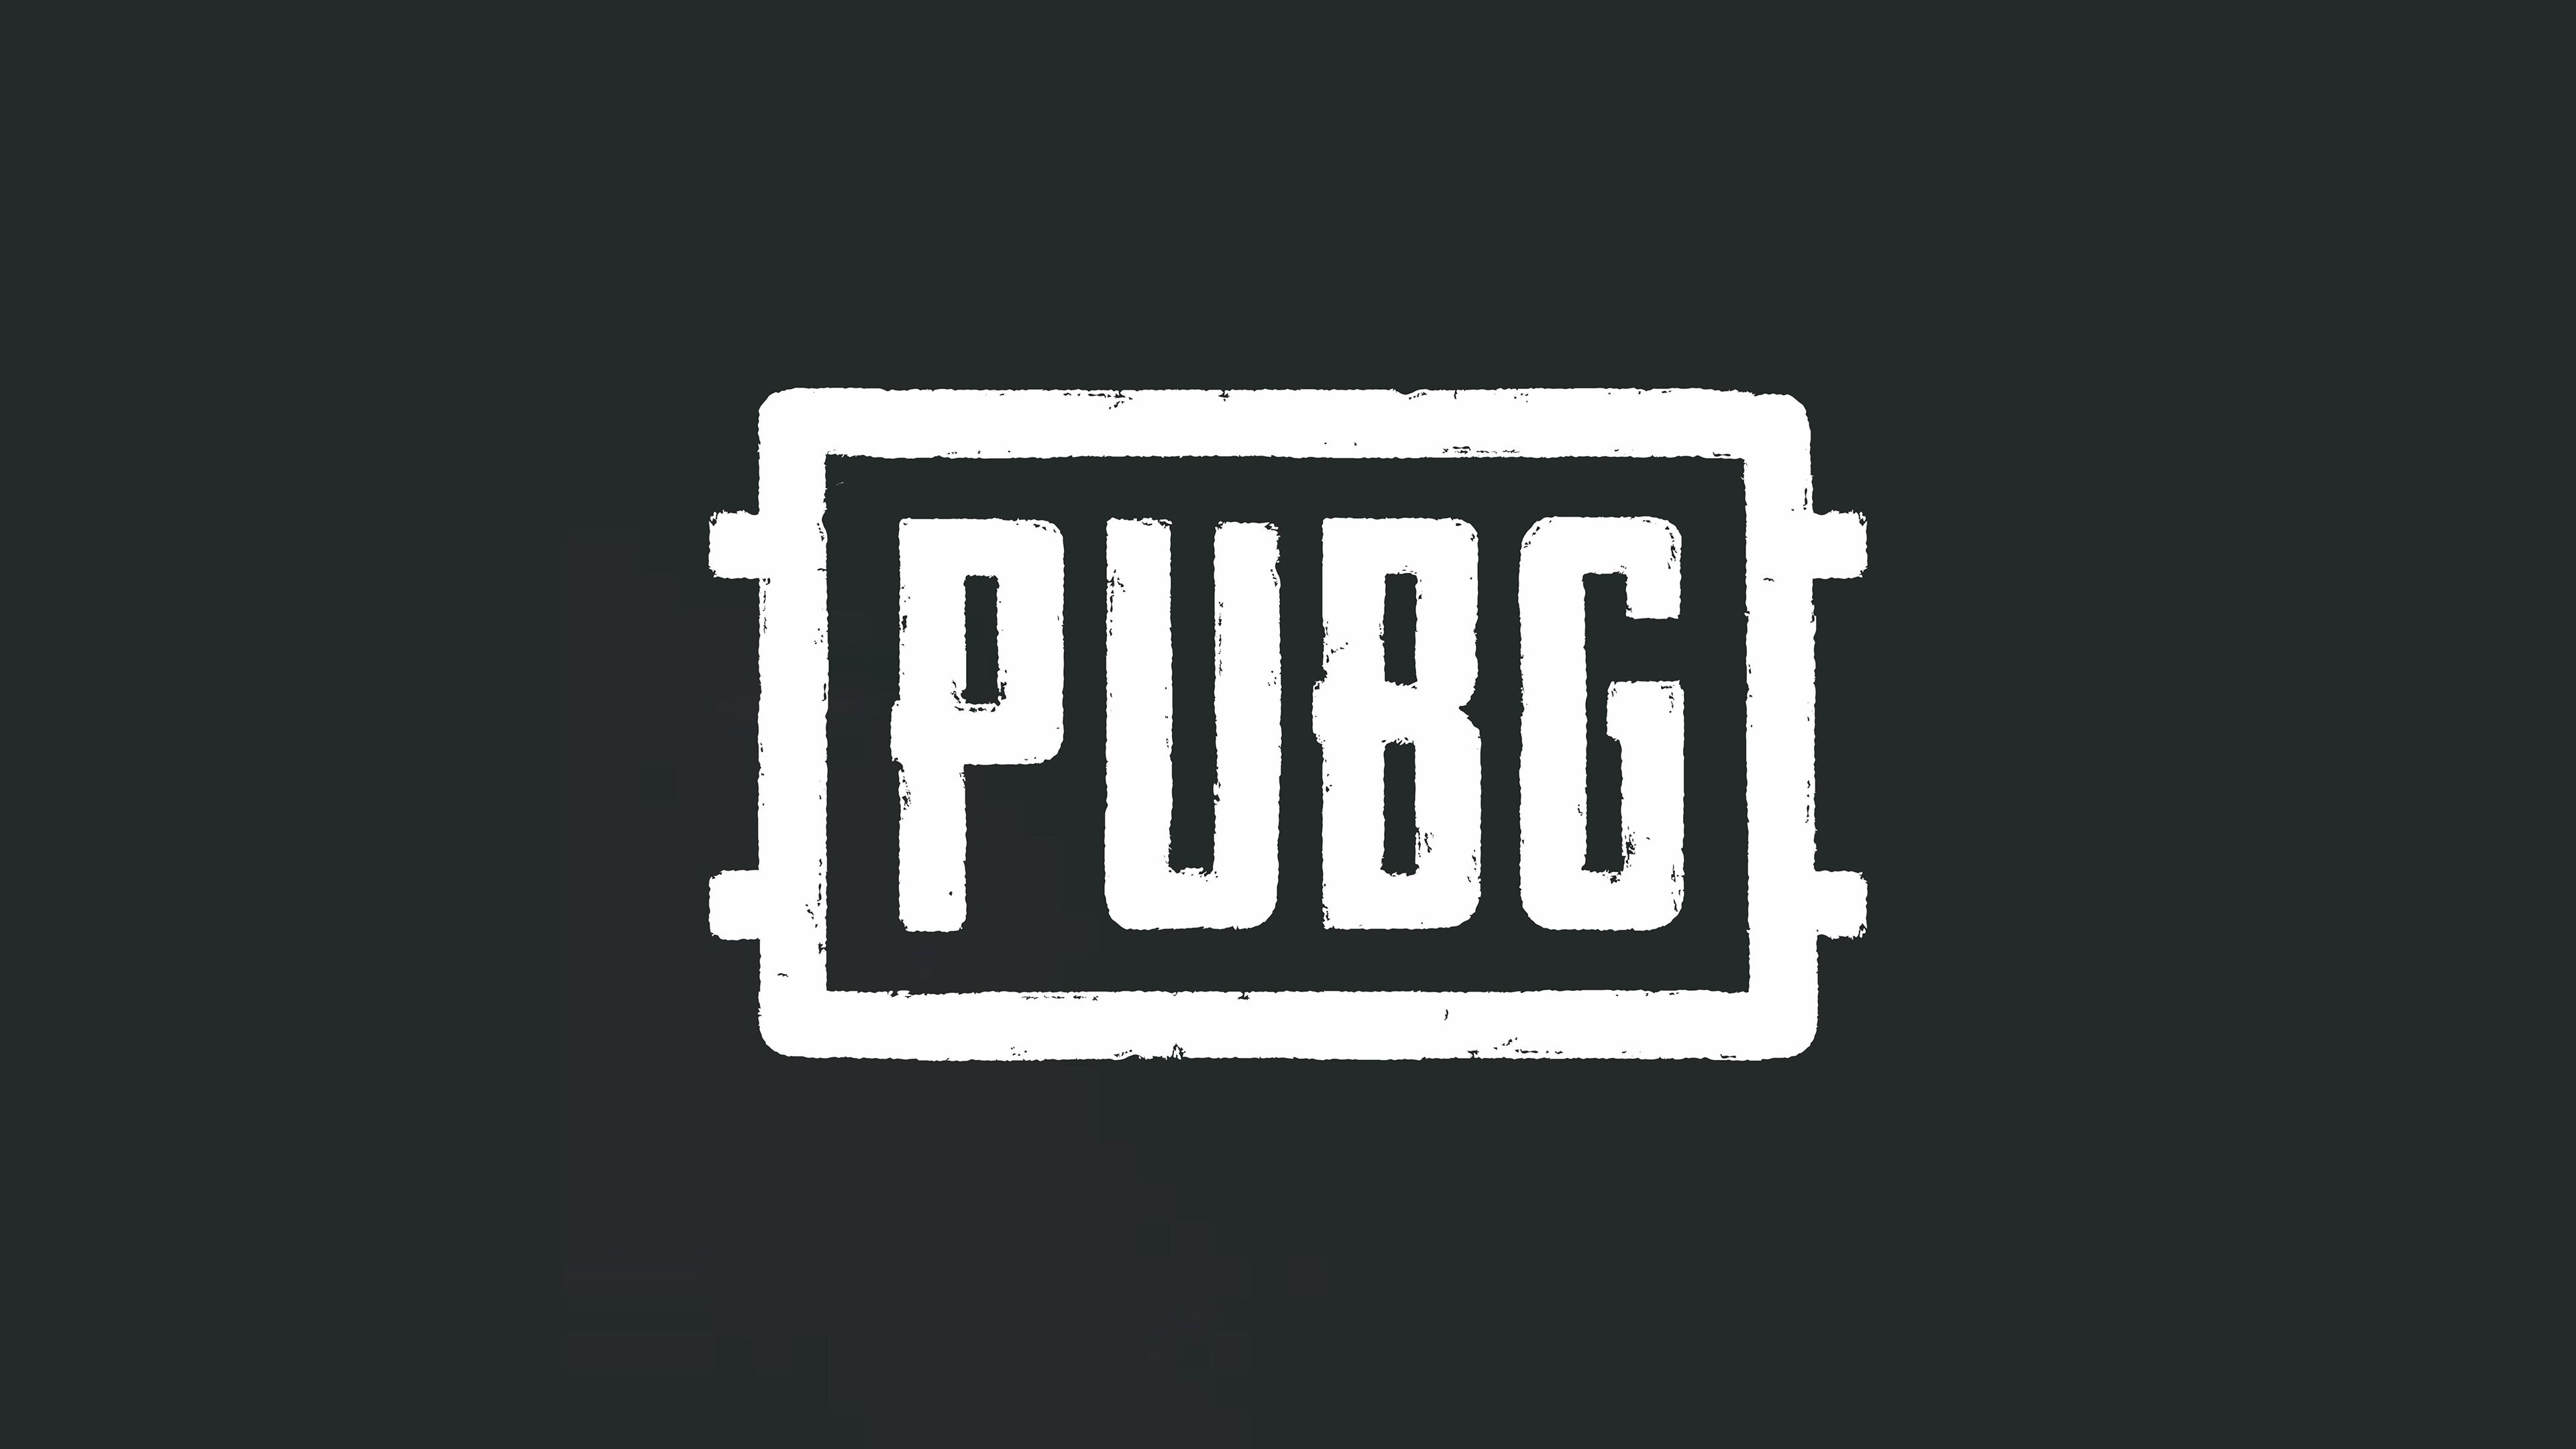 PUBG Game Logo 4k pubg wallpapers, playerunknowns.